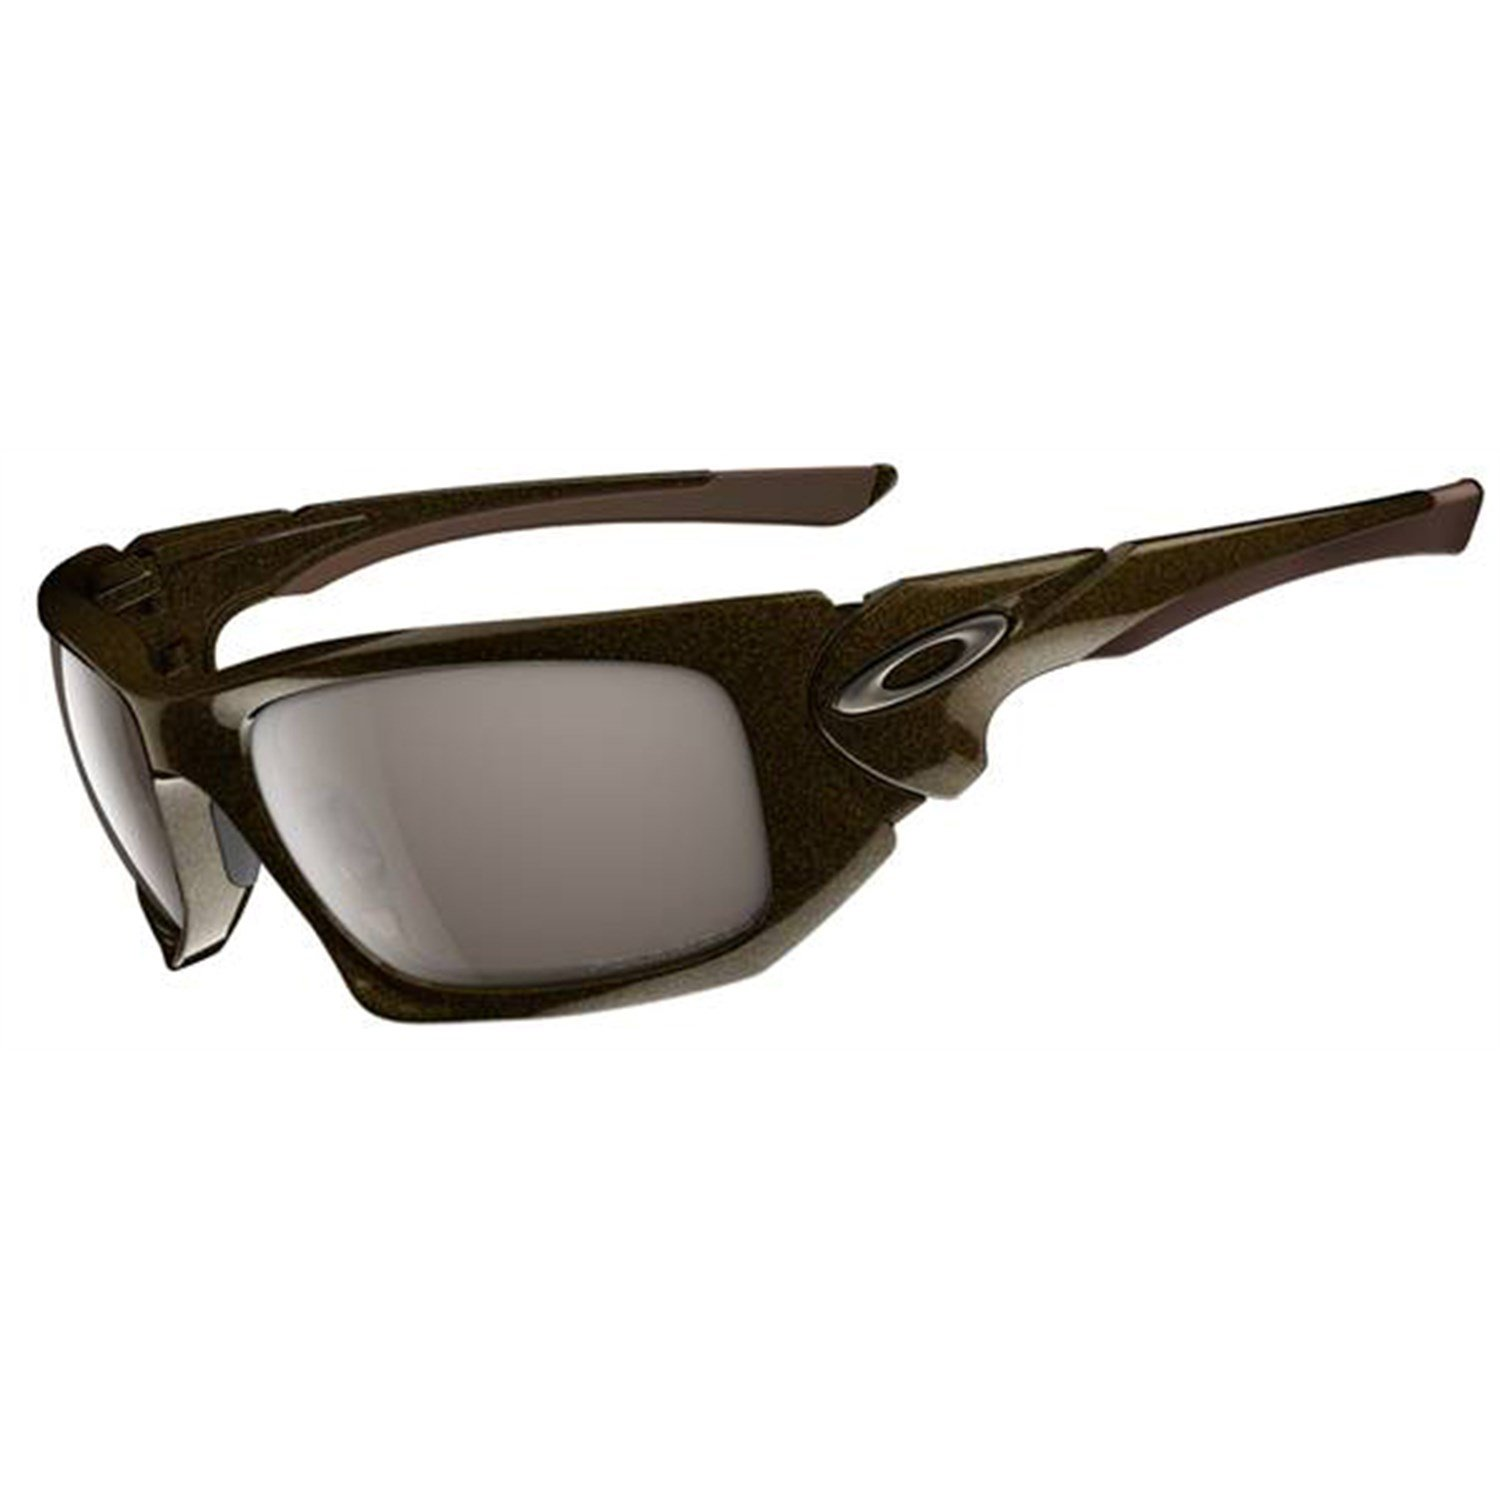 oakley kids sunglasses uy17  oakley kids sunglasses